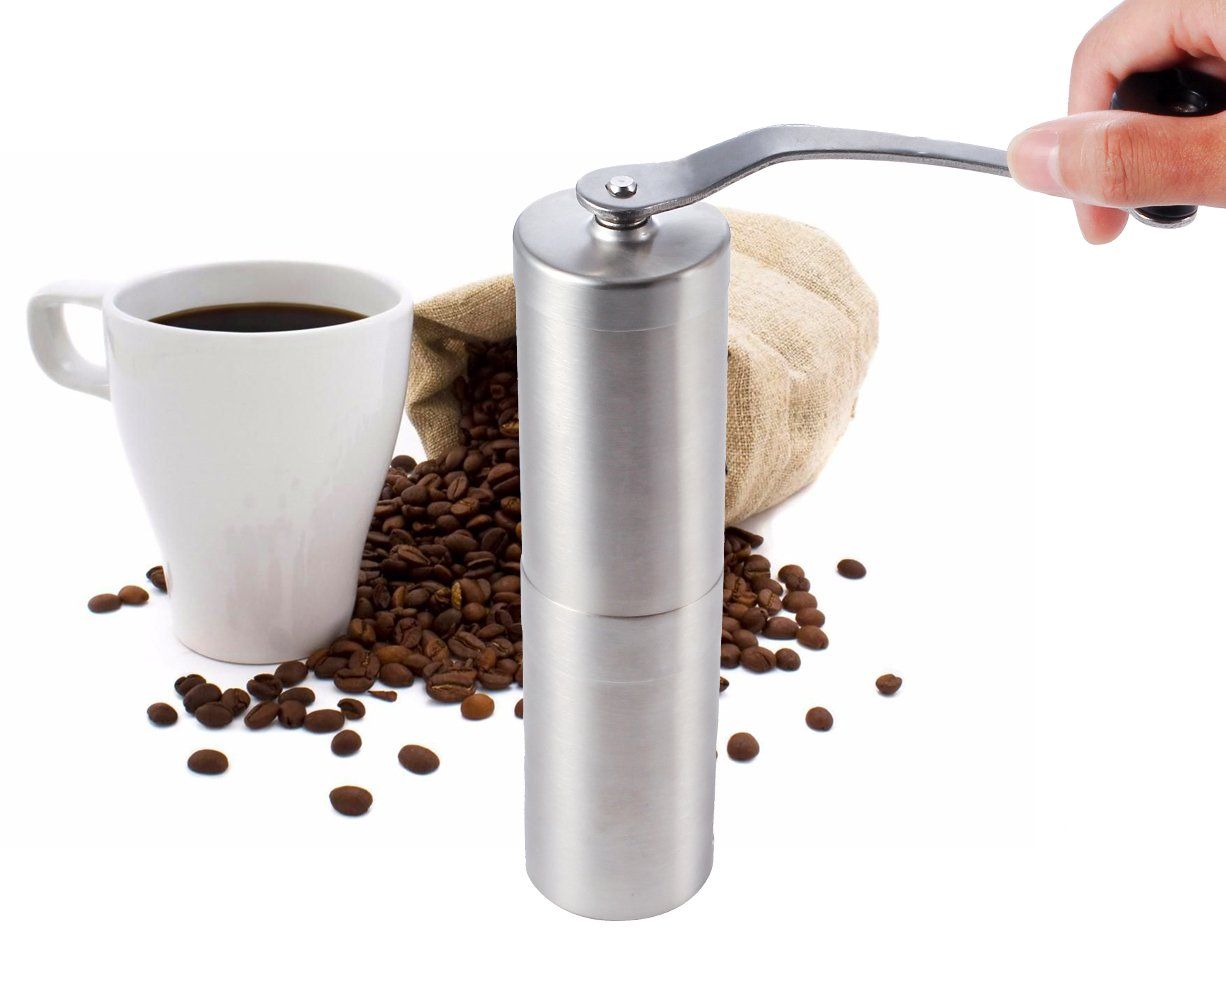 Manual Coffee Grinder, Conical Burr Mill, Brushed Stainless Steel Premium Quality Stainless Steel Manual Coffee Grinder - Portable Burr Coffee Grinder - Lightweight Grinding - Ceramic 1 service